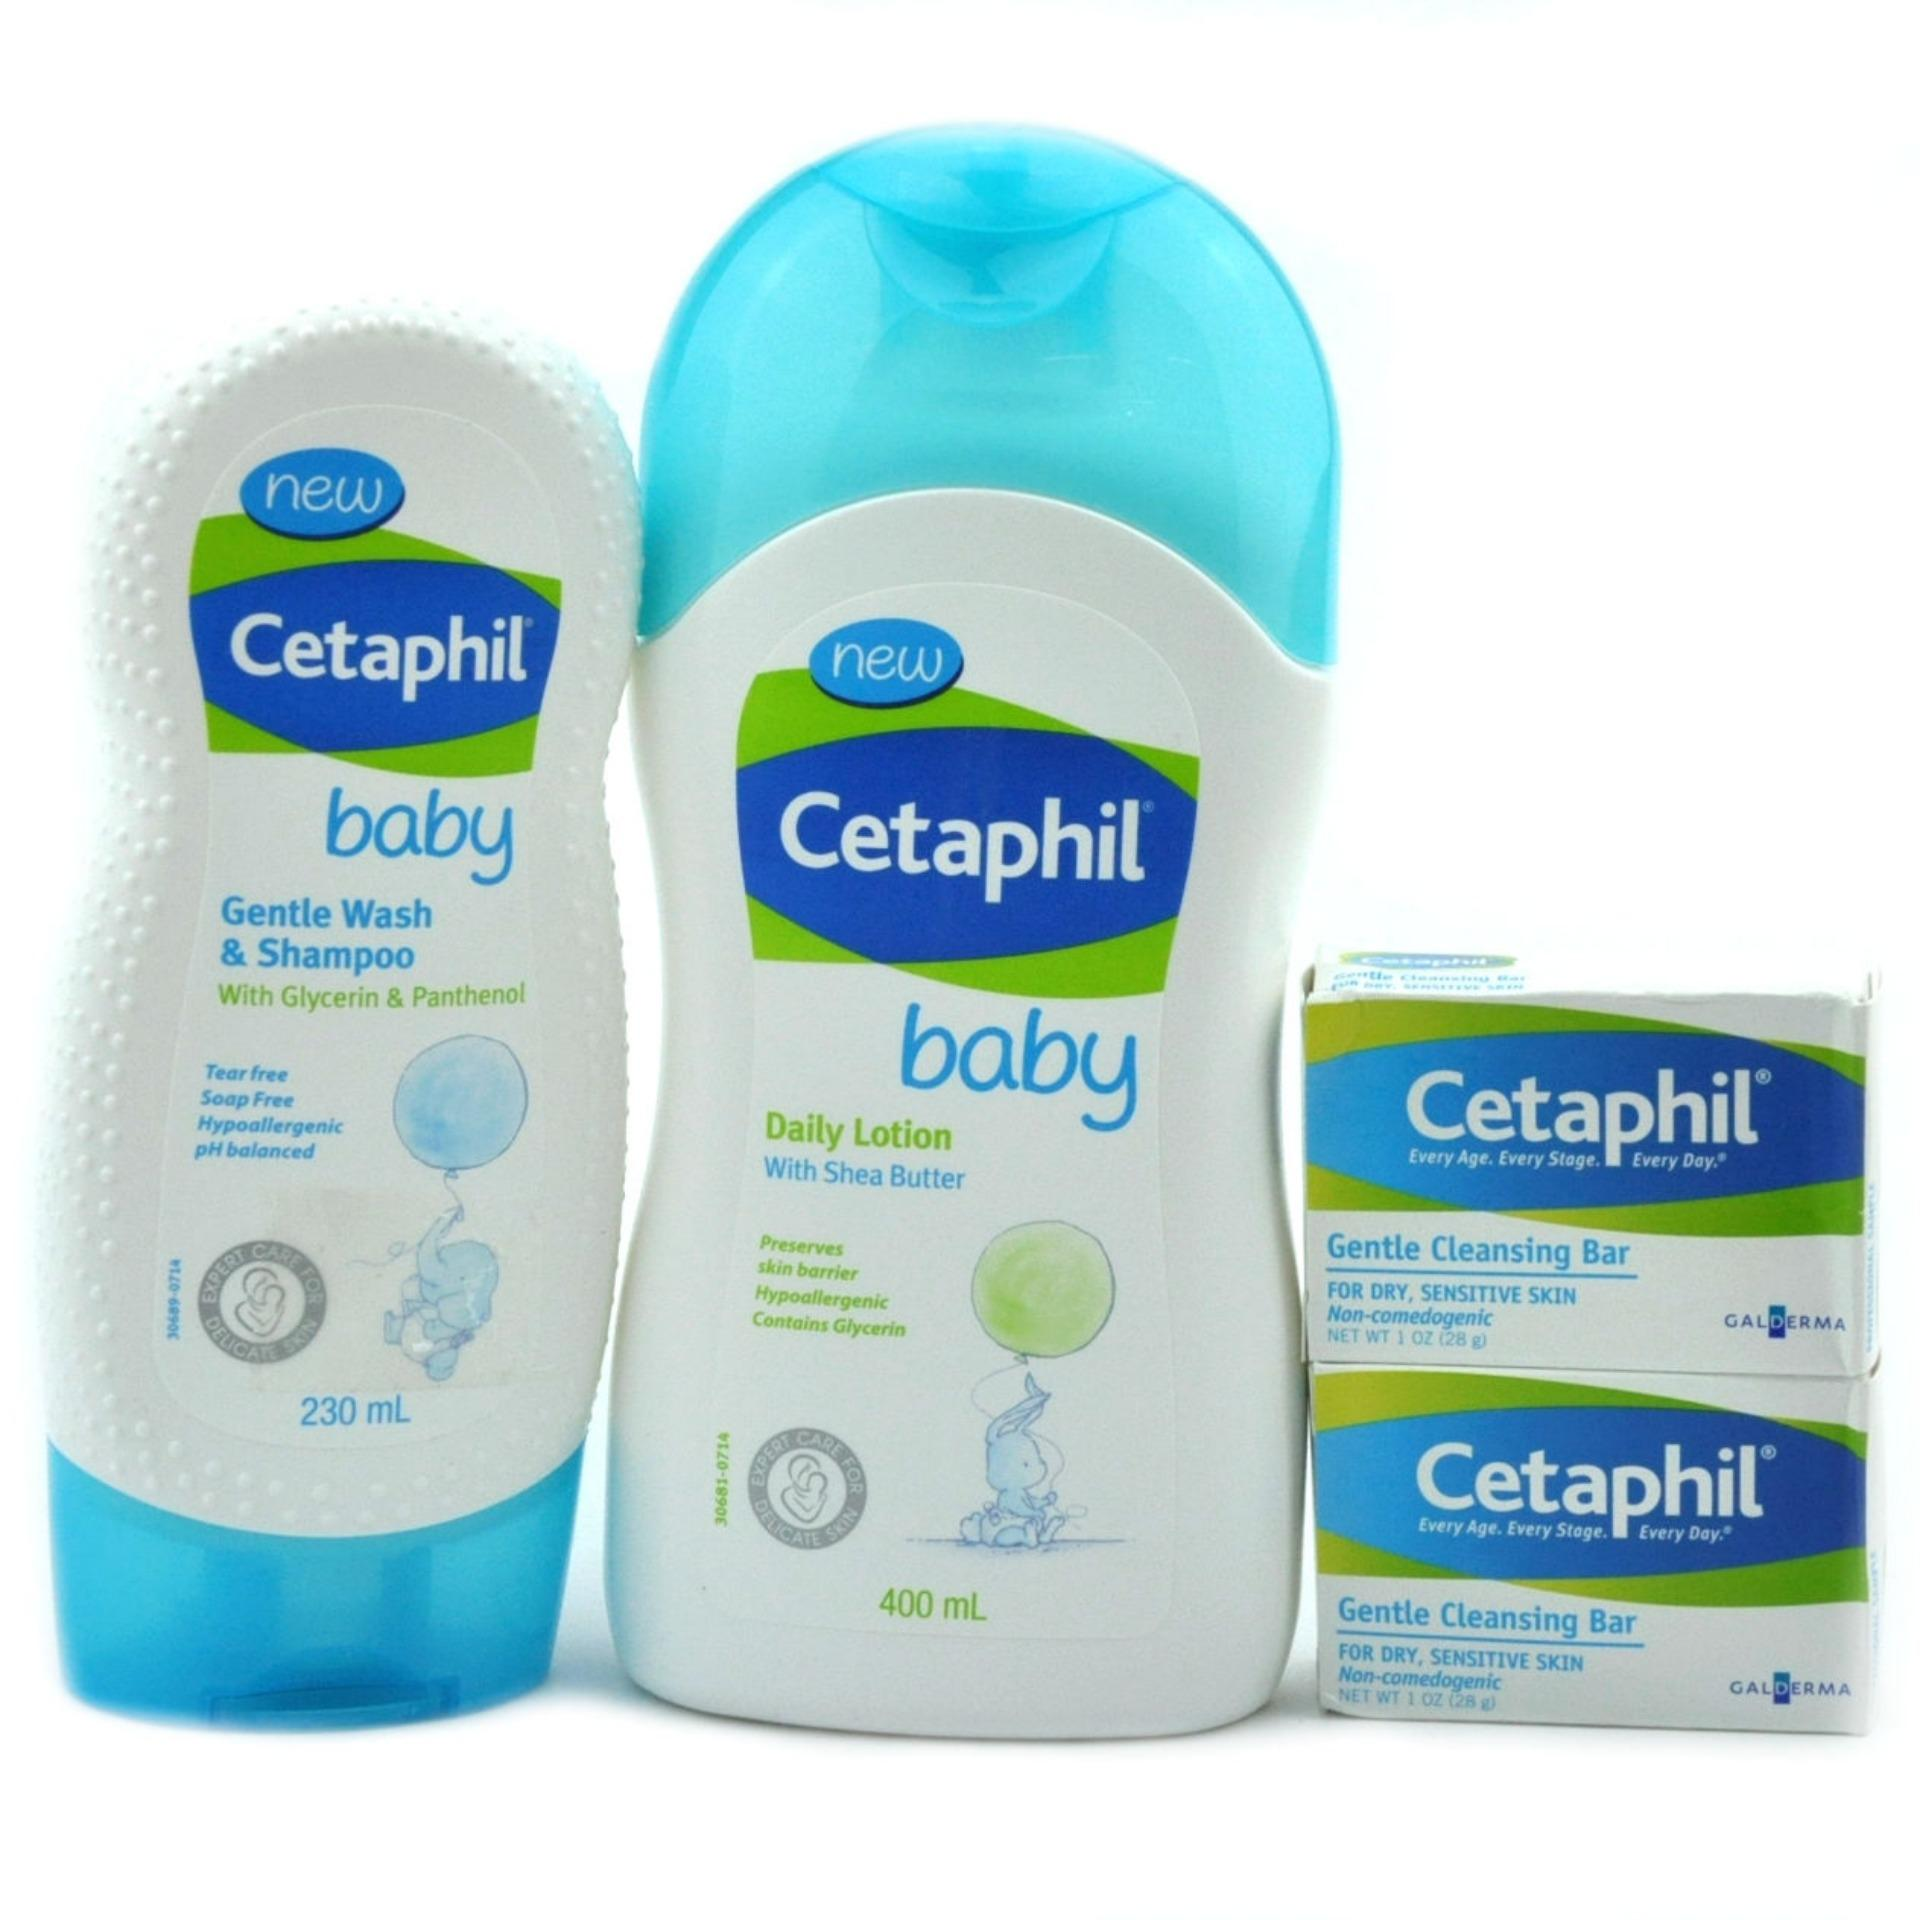 Philippines Cetaphil Baby Bundle Cleansing Collection Flash Sale Daily Lotion With Shea Butter 400 Ml